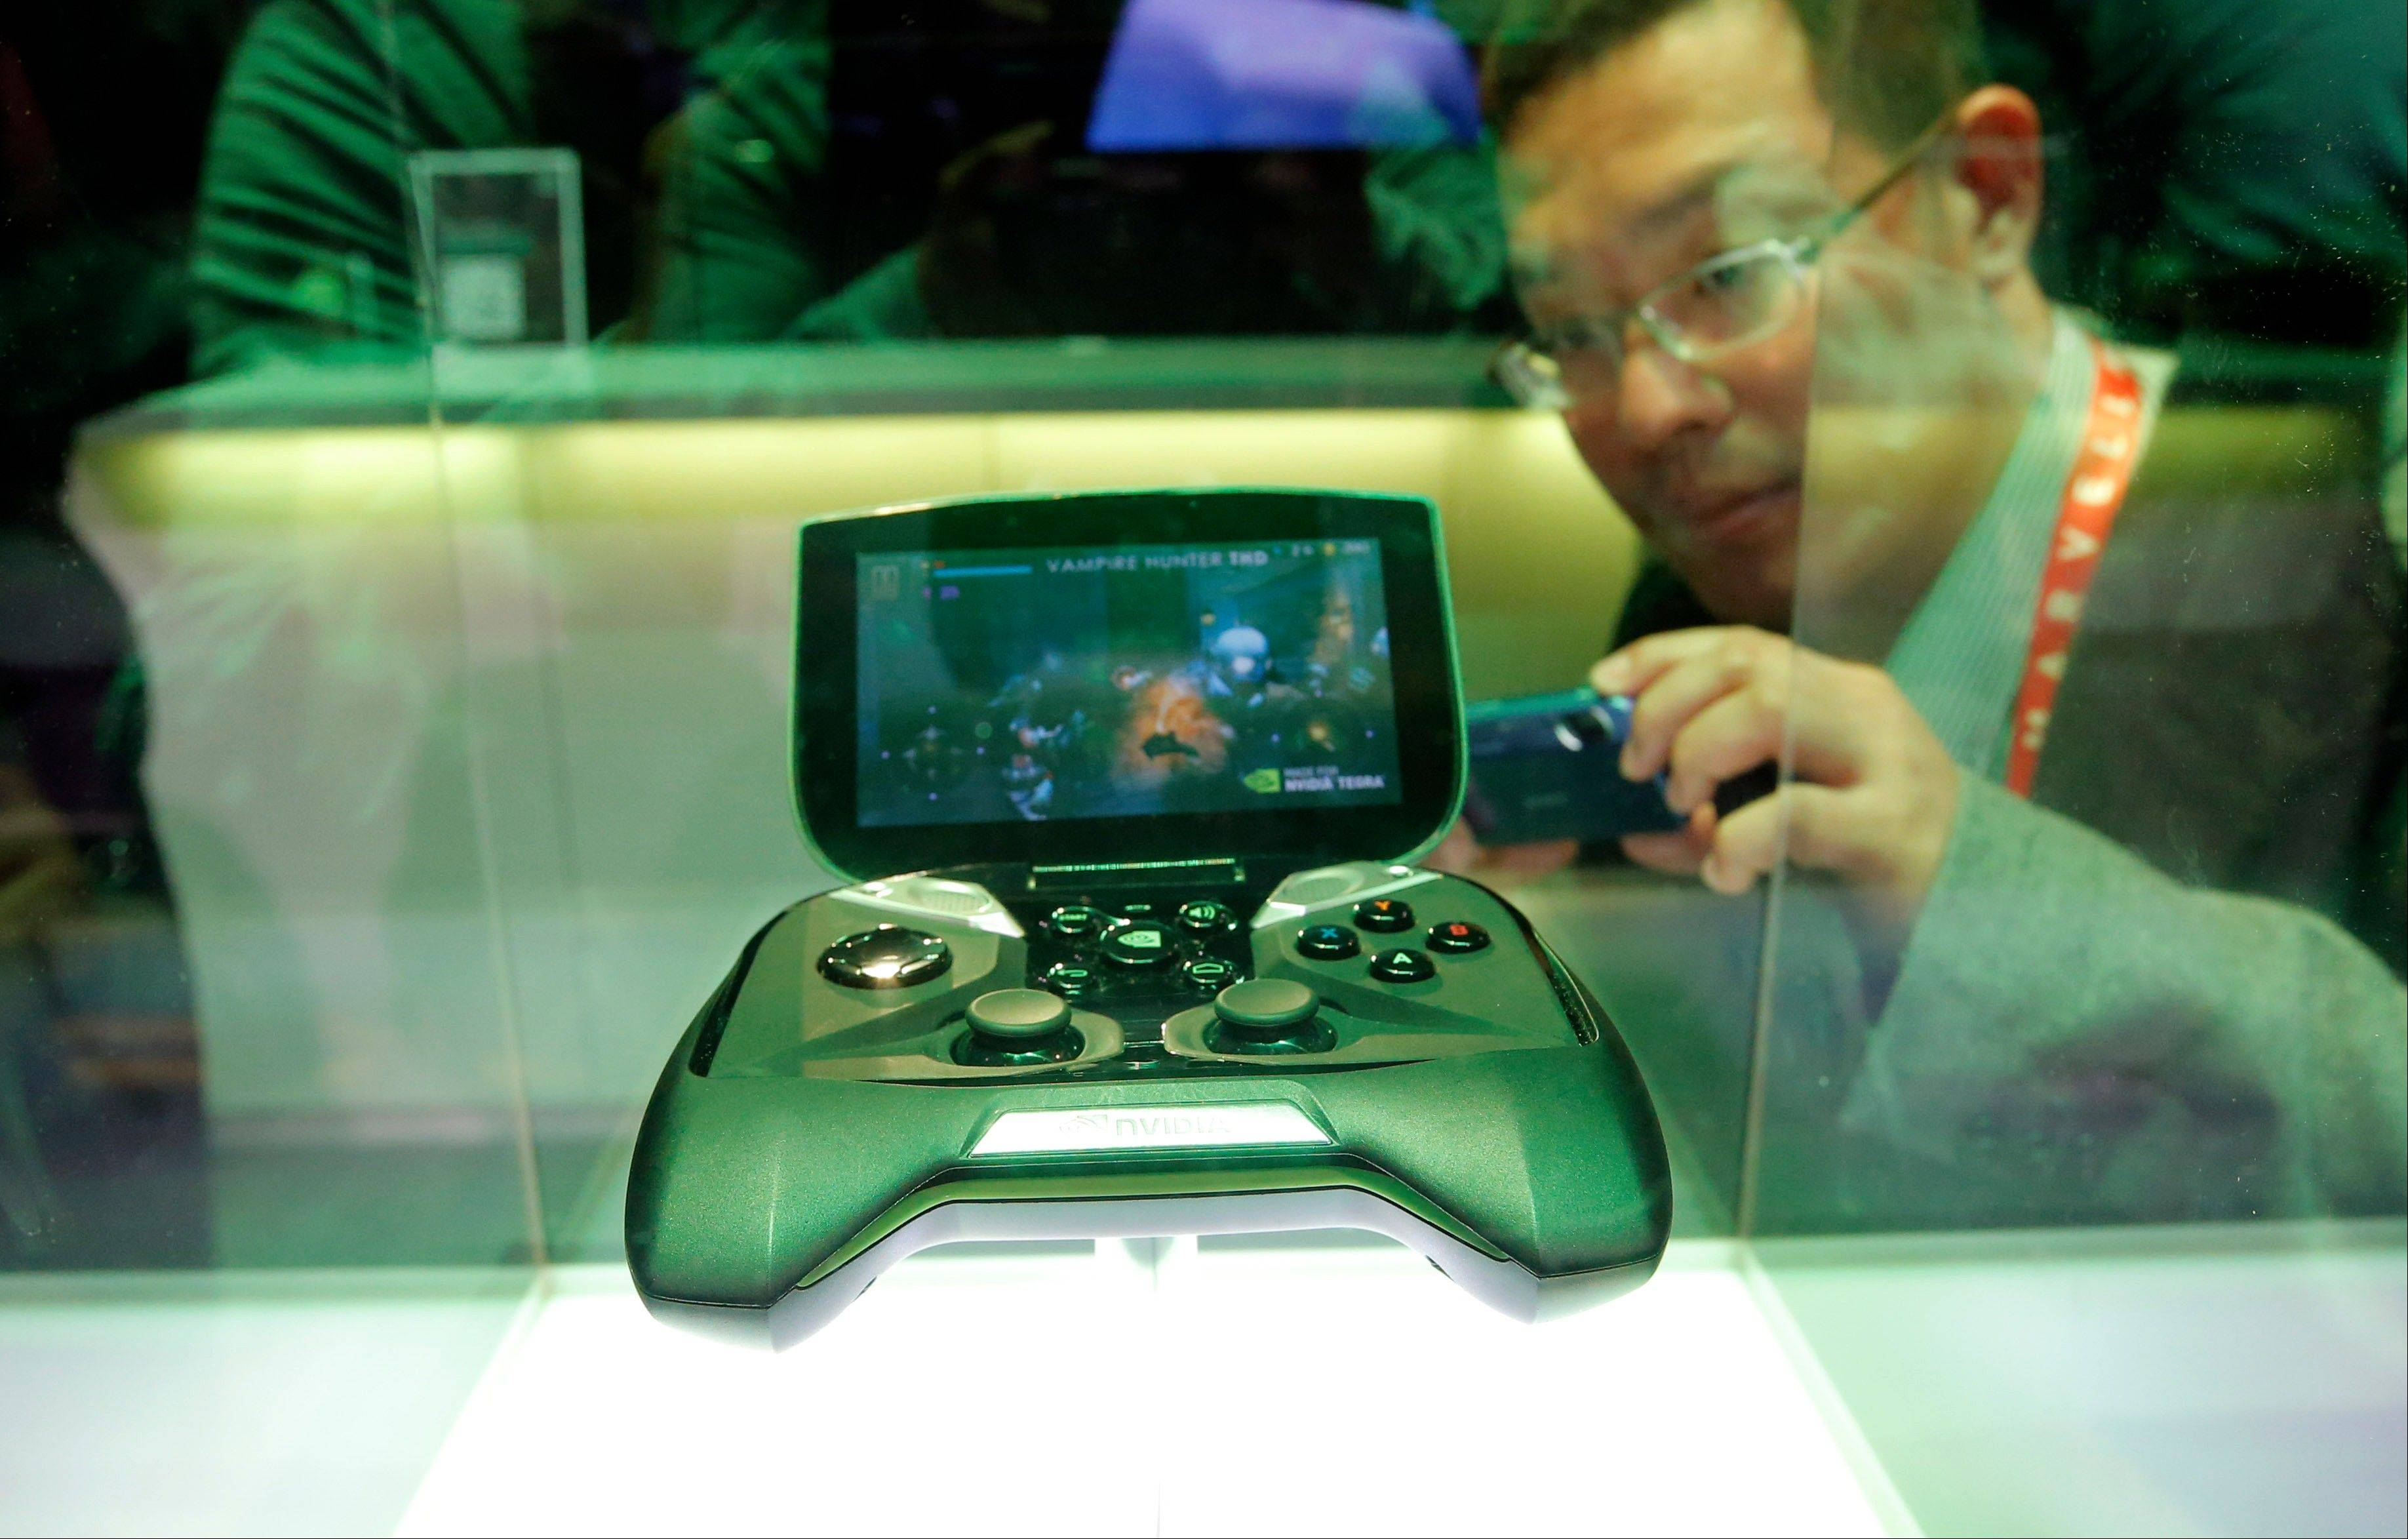 NVIDIA�s portable handheld gaming device, the Project Shield, is on display at the NVIDIA booth at the International Consumer Electronics Show in Las Vegas, Tuesday, Jan. 8, 2013.